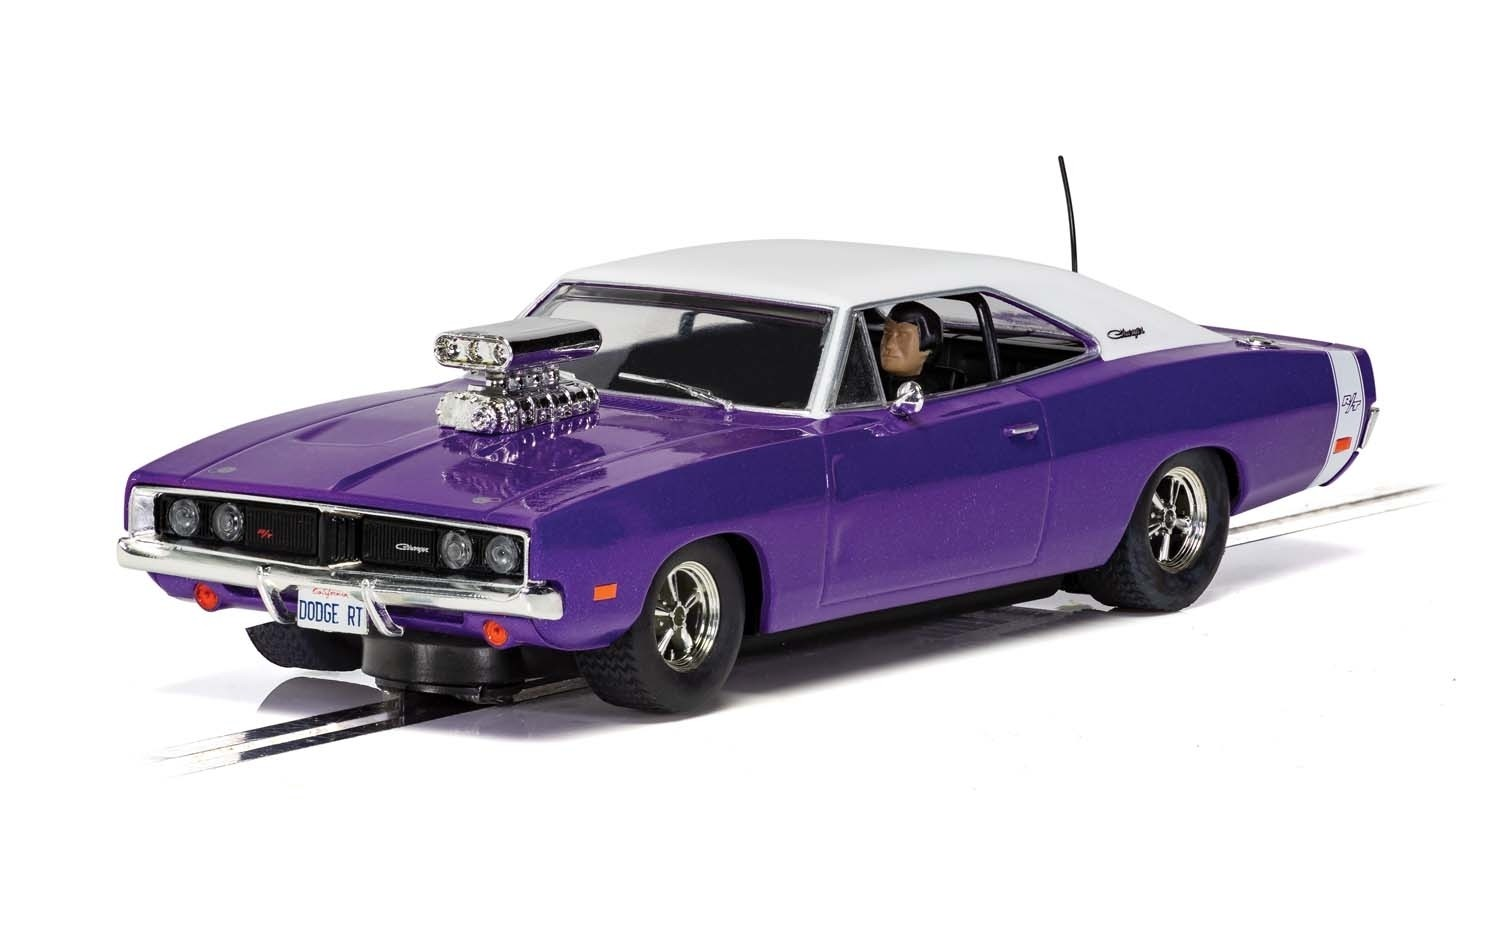 Dodge Charger R/T - Purple